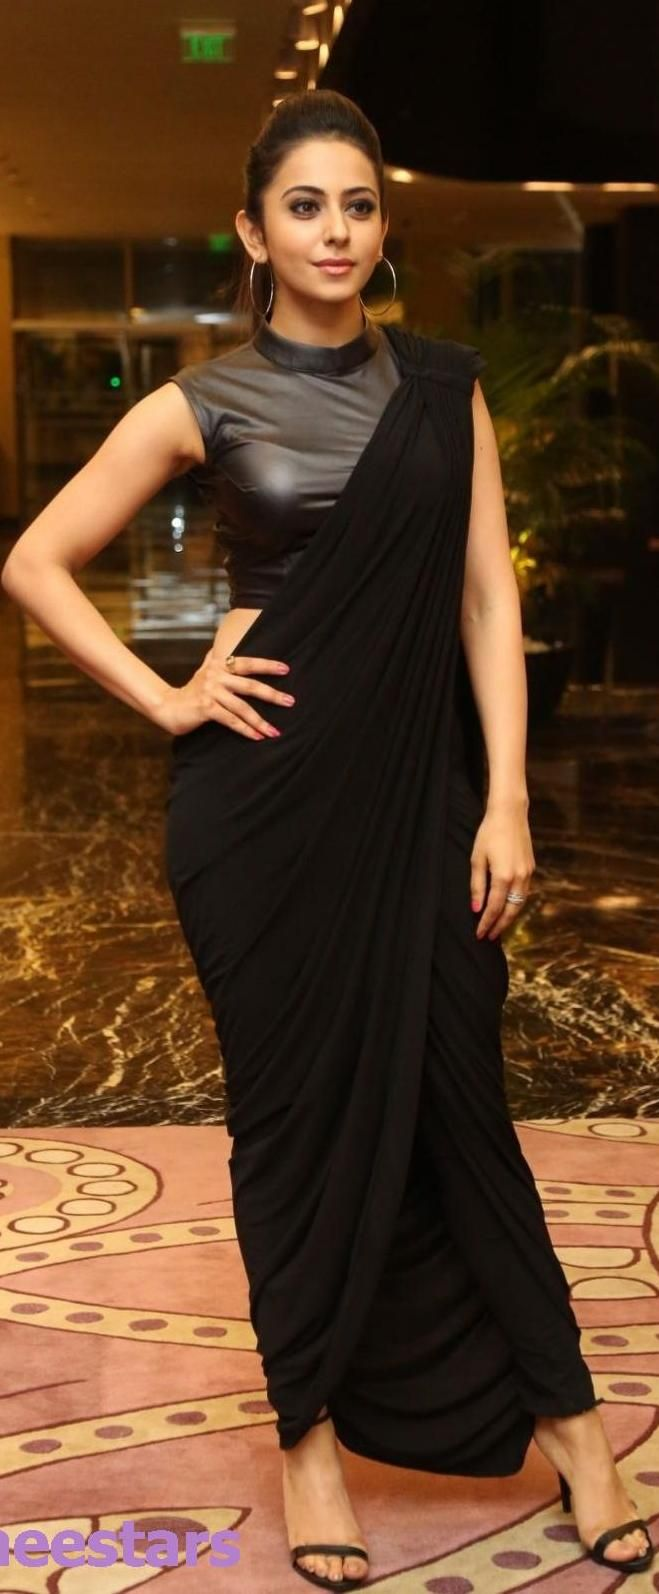 ''Pinterest @Littlehub || Six yard- The Saree ❤•。*゚|| Rakul preet singh in saree inspired dress